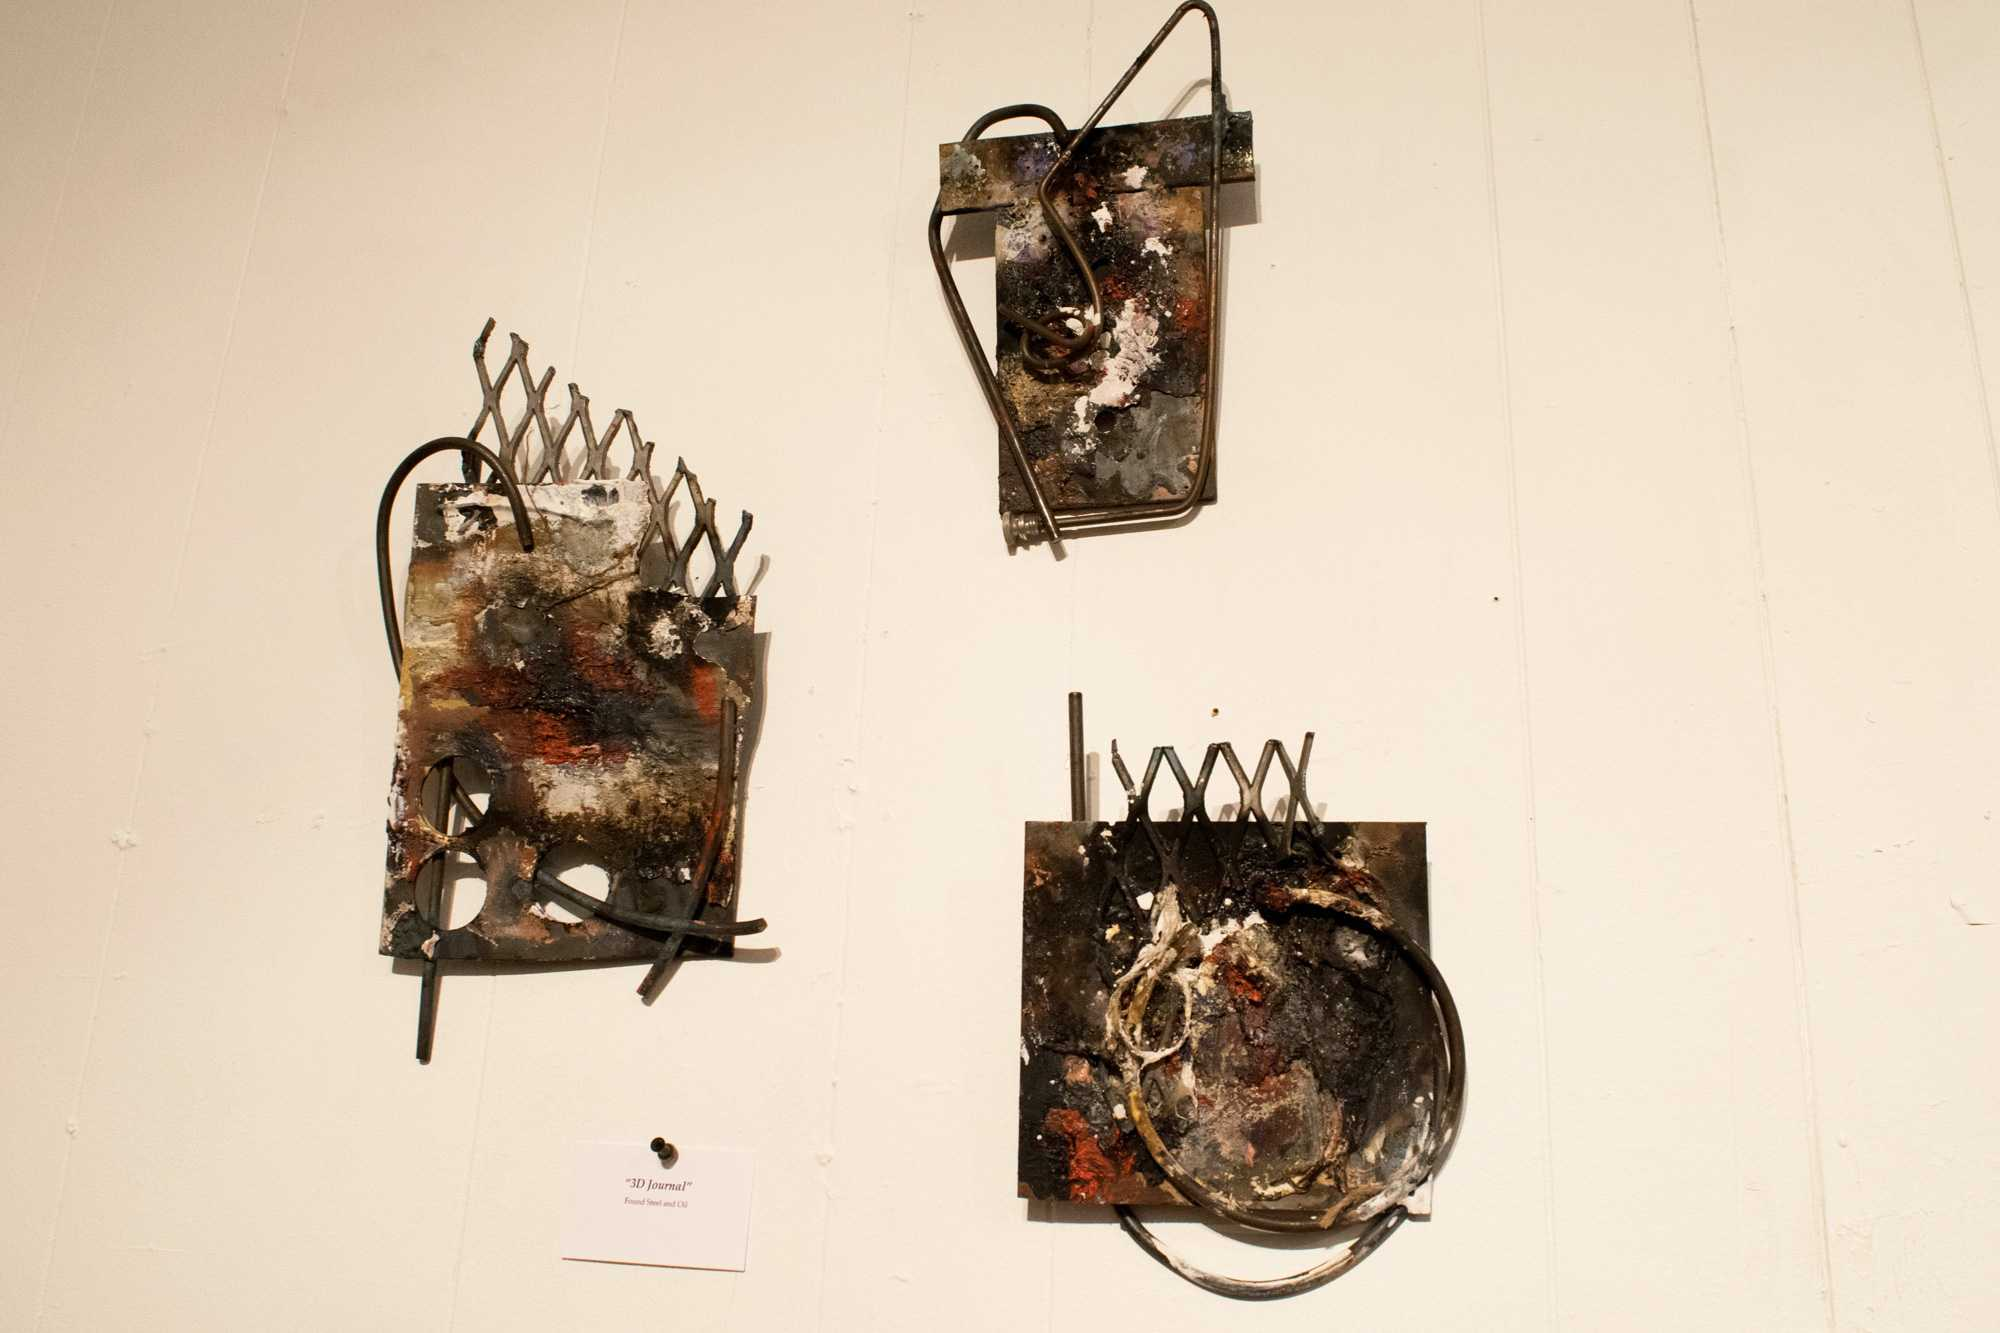 These pieces were created by E Earl with steel and plaster. The art work is hanging up in Nth Gallery and was included in the New River Art Exhibit on February 3, 2017.